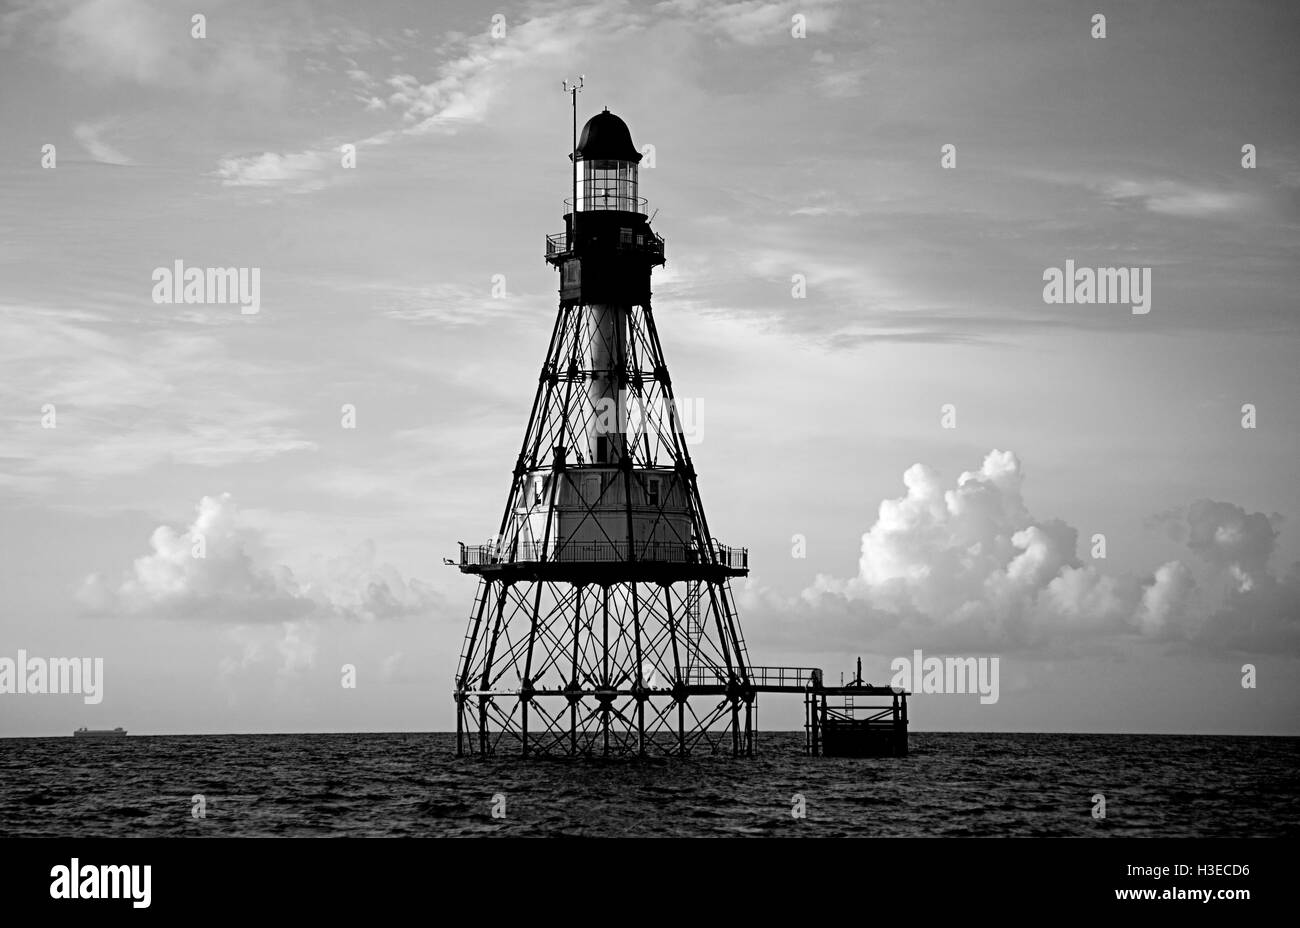 On a serene calm morning,Florida's Fowey Rocks Lighthouse greets the early light of day in this black and white - Stock Image